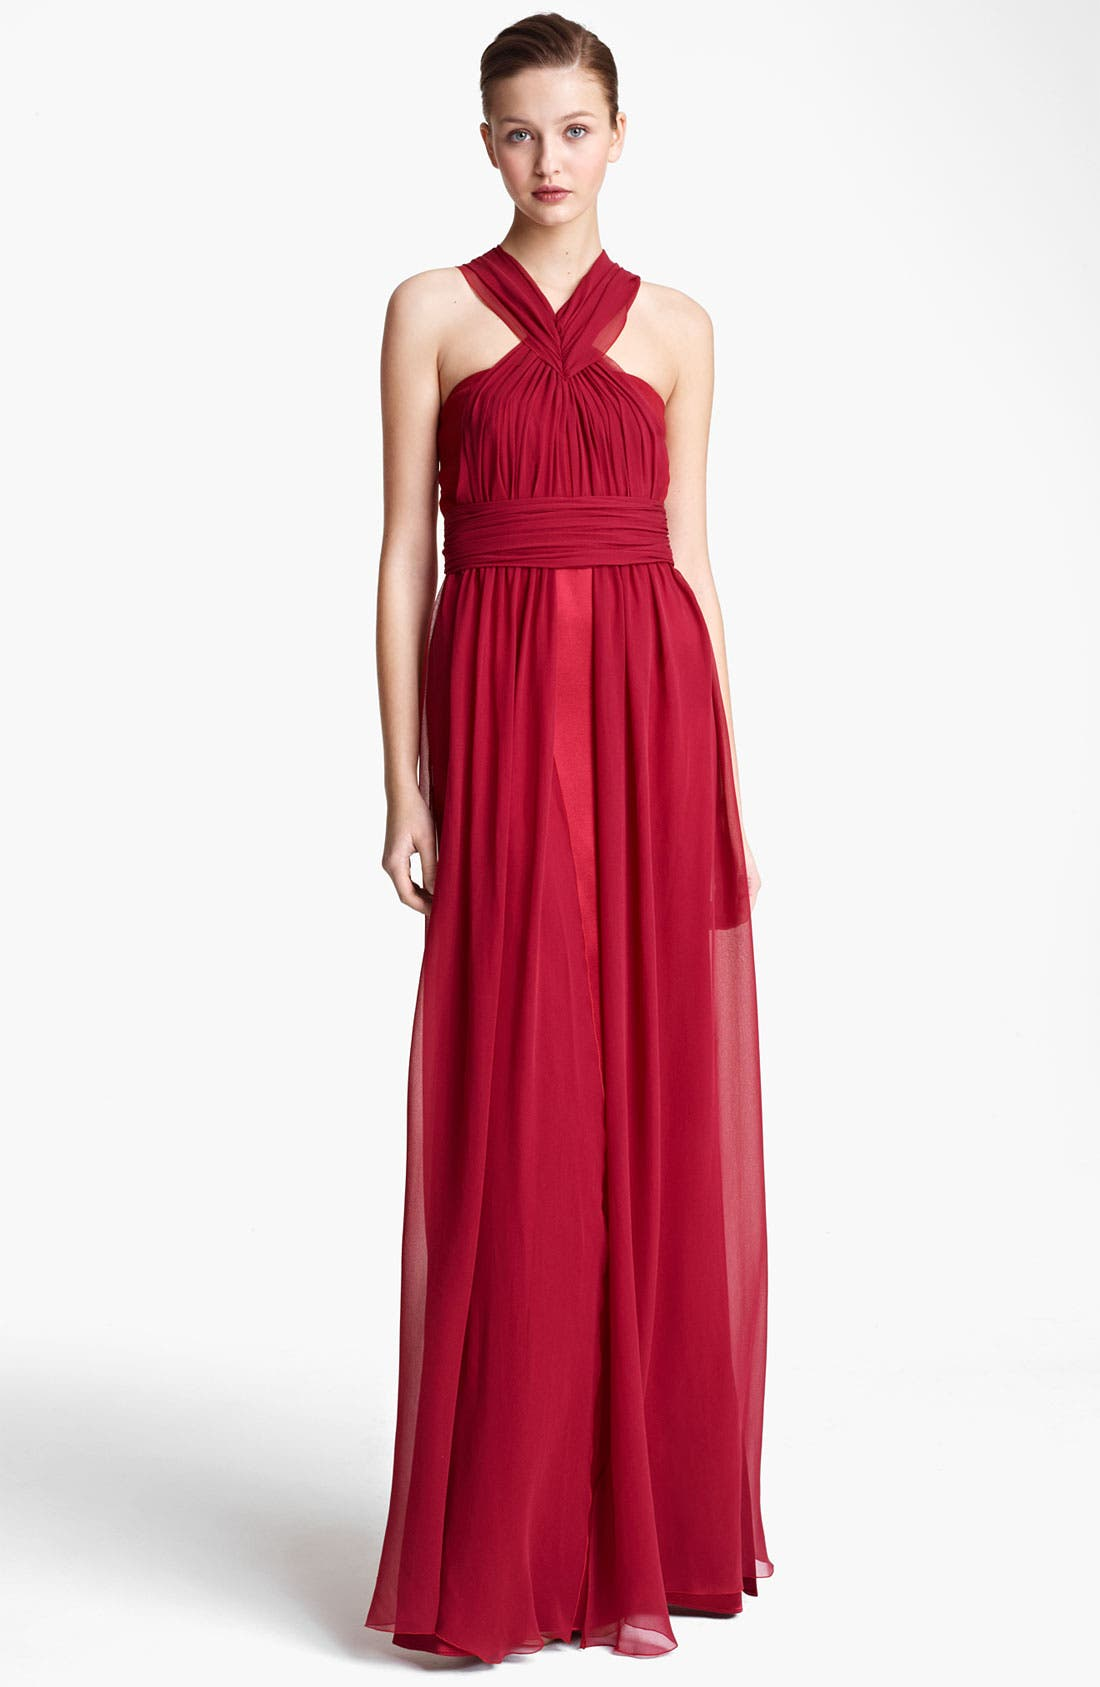 Main Image - Vionnet Ruched Chiffon & Satin Gown